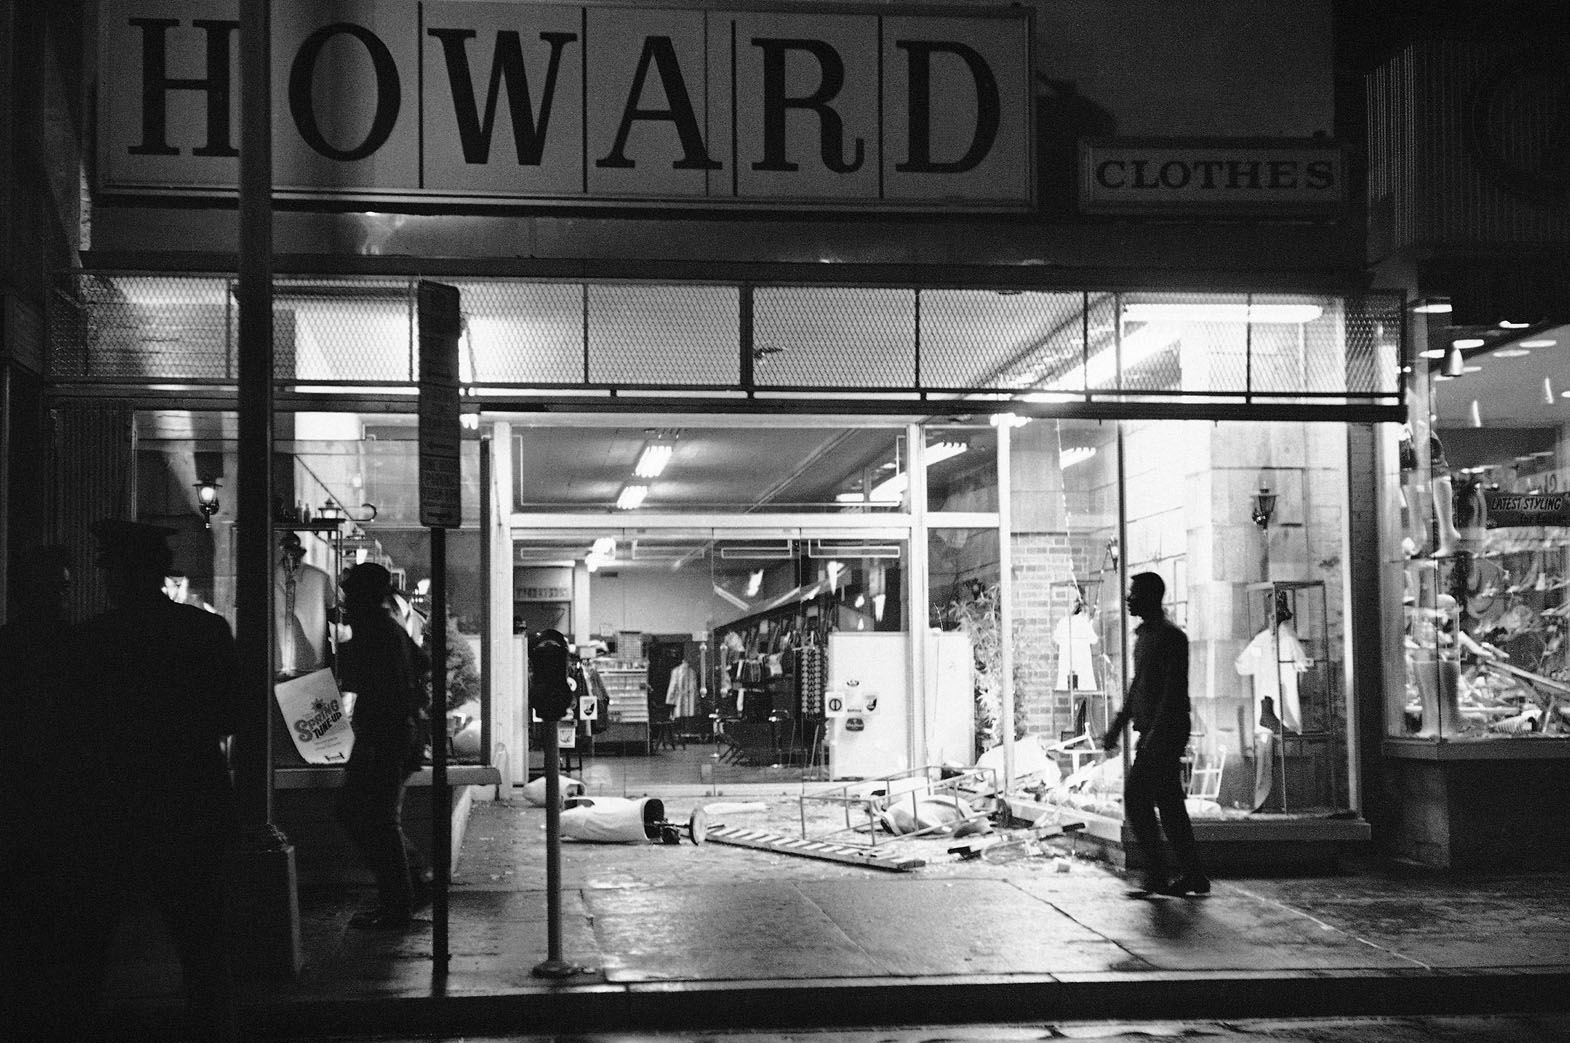 Glass and mannequins litter sidewalk at this clothing store in Northwest Washington, April 4, 1968 after crowds in the predominantly black neighborhood broke into and looted some stores. Crowds gathered following news that Dr. Martin Luther King Jr. had been slain. (AP Photo/Charles Harrity)